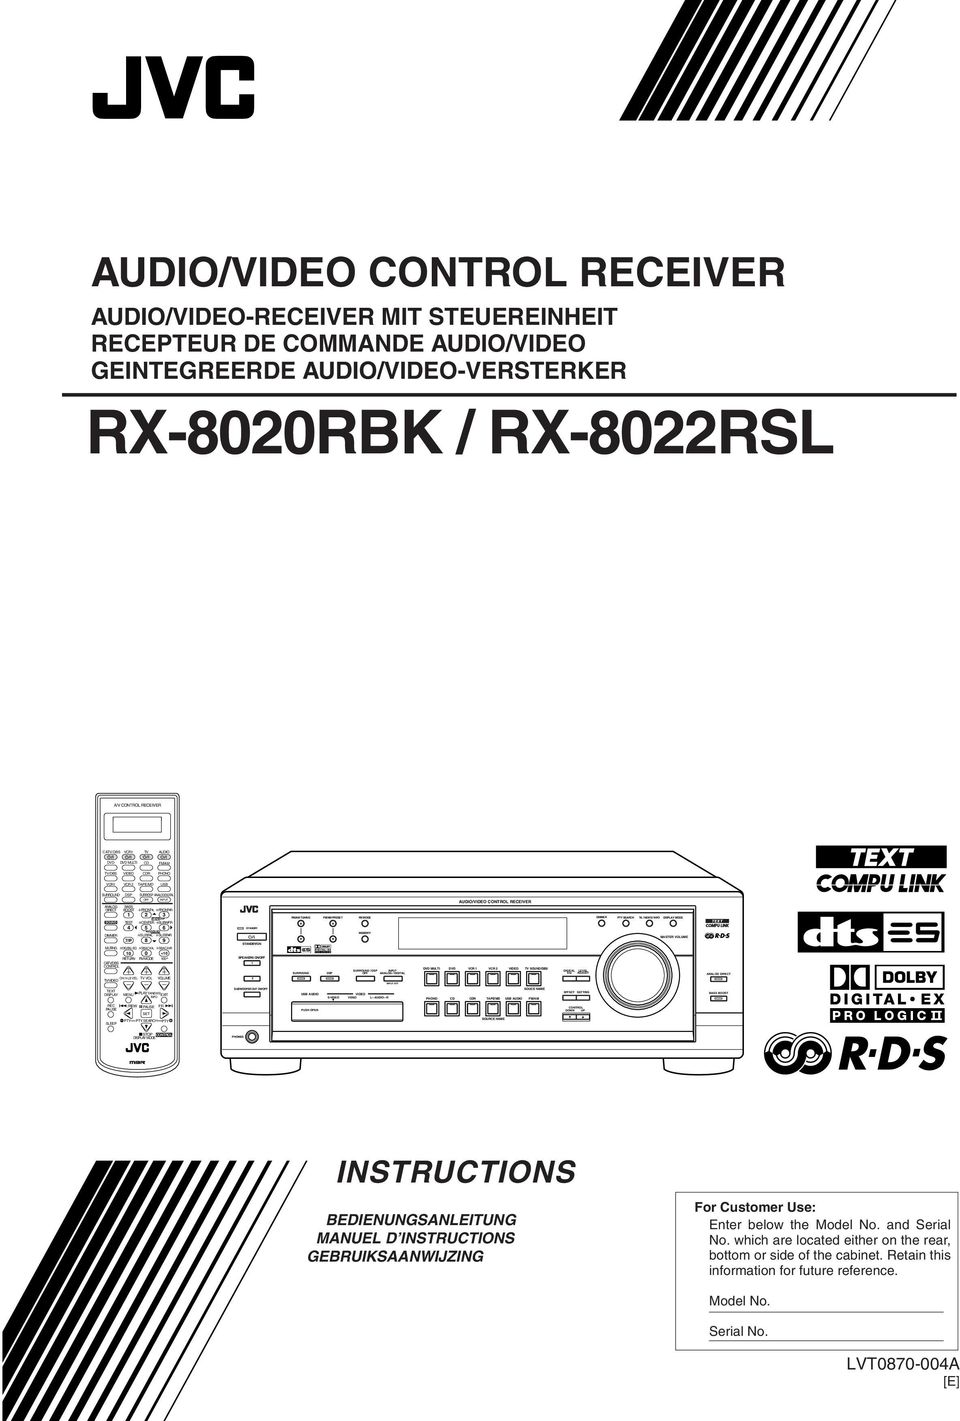 CONTROL RECEIVER CATV/DBS VCR1 TV AUDIO MULTI CD FM/AM TV/DBS VIDEO CDR PHONO VCR1 VCR 2 TAPE/MD USB SURROUND DSP SURR/DSP ANALOG/DIGITAL OFF INPUT ANALOG BASS DIRECT BOOST FRONT L FRONT R 1 2 3 MENU